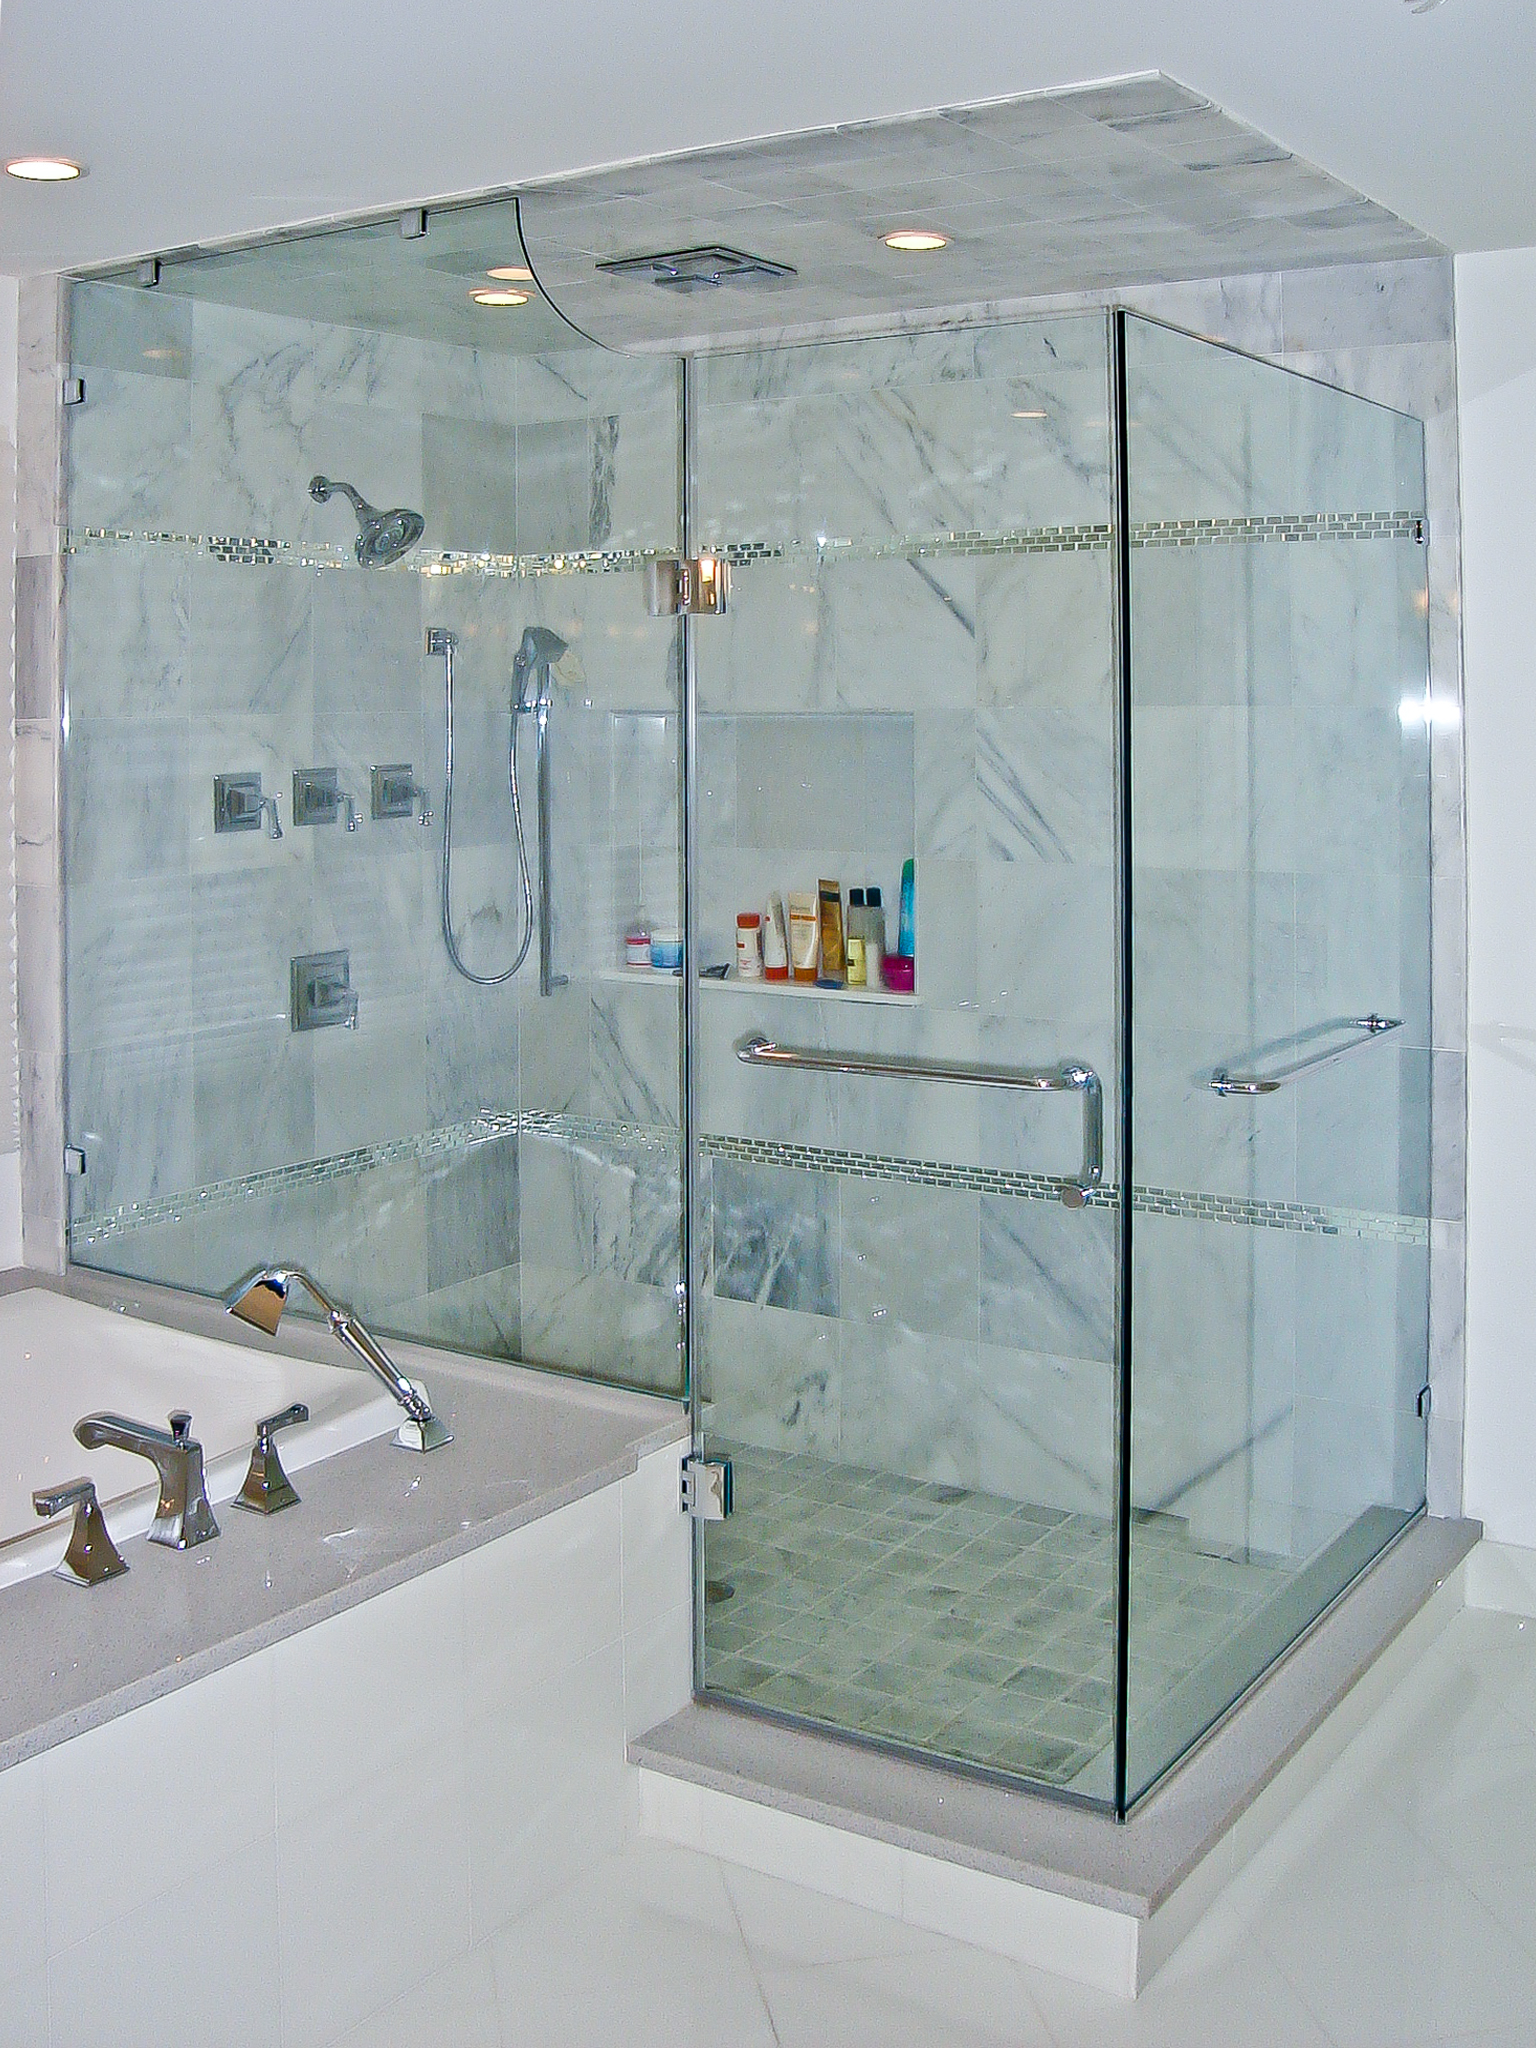 2 - Frameless shower door